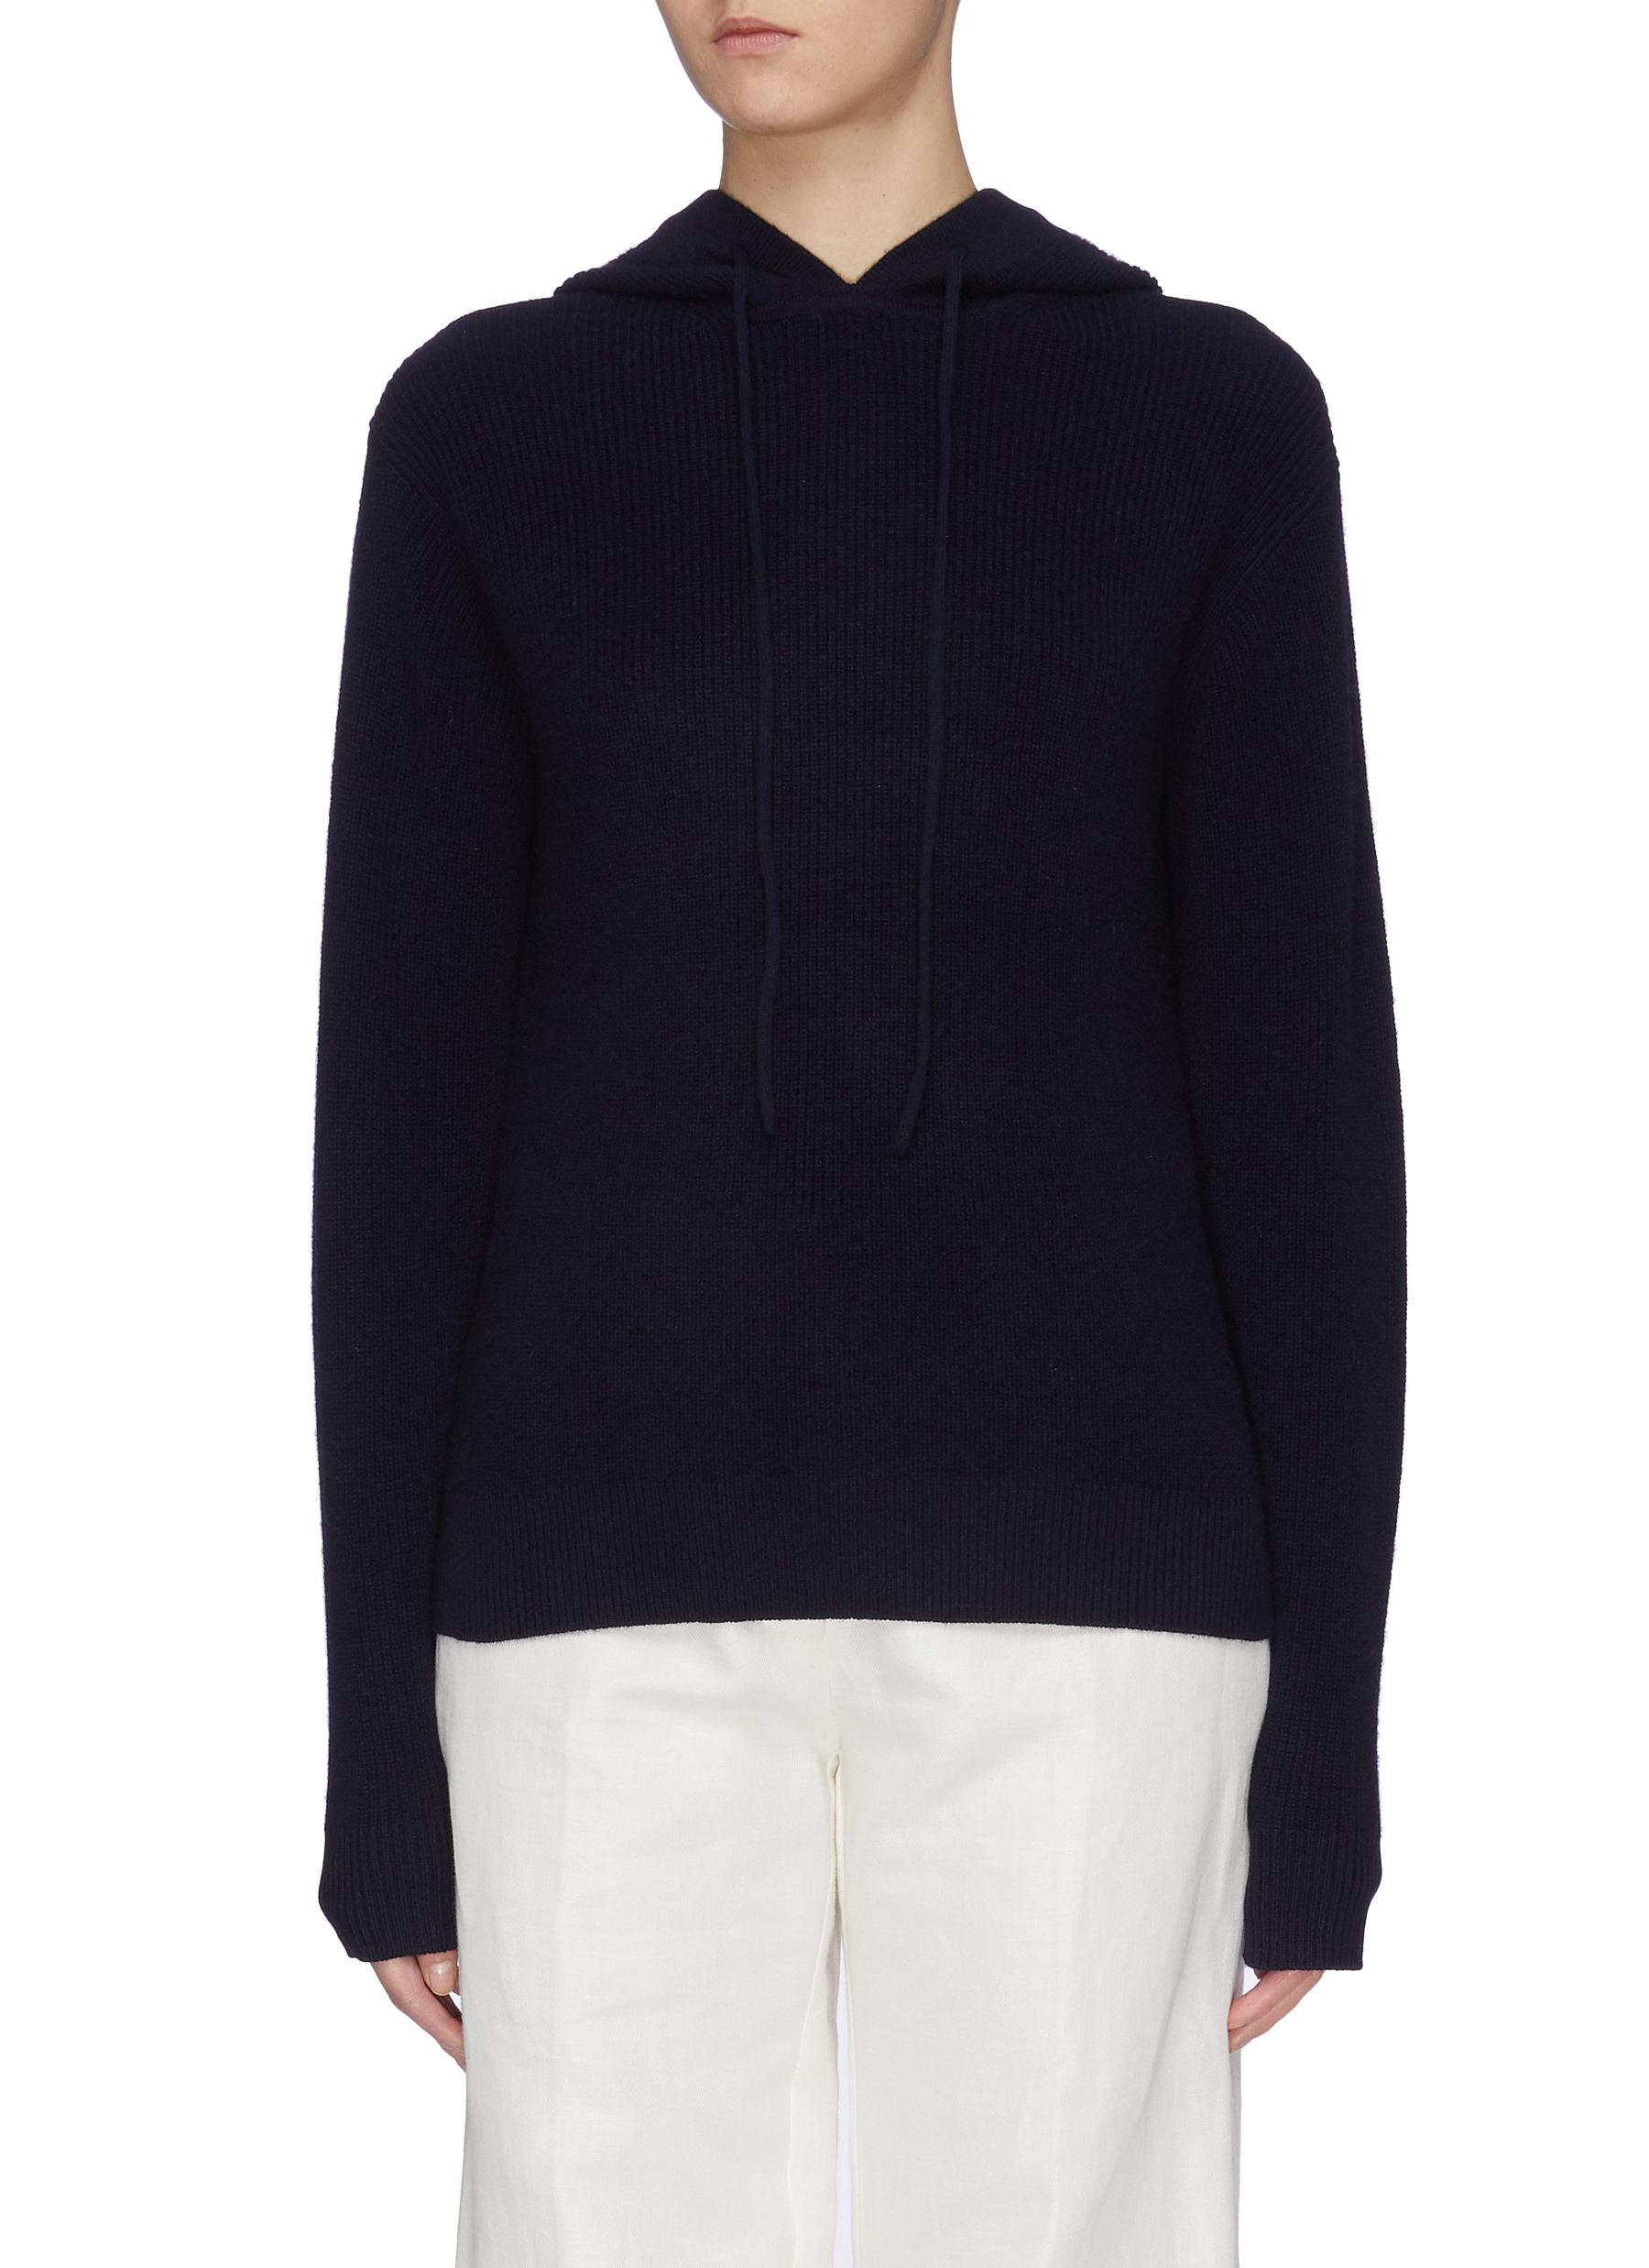 Cashmere knit hoodie by Theory